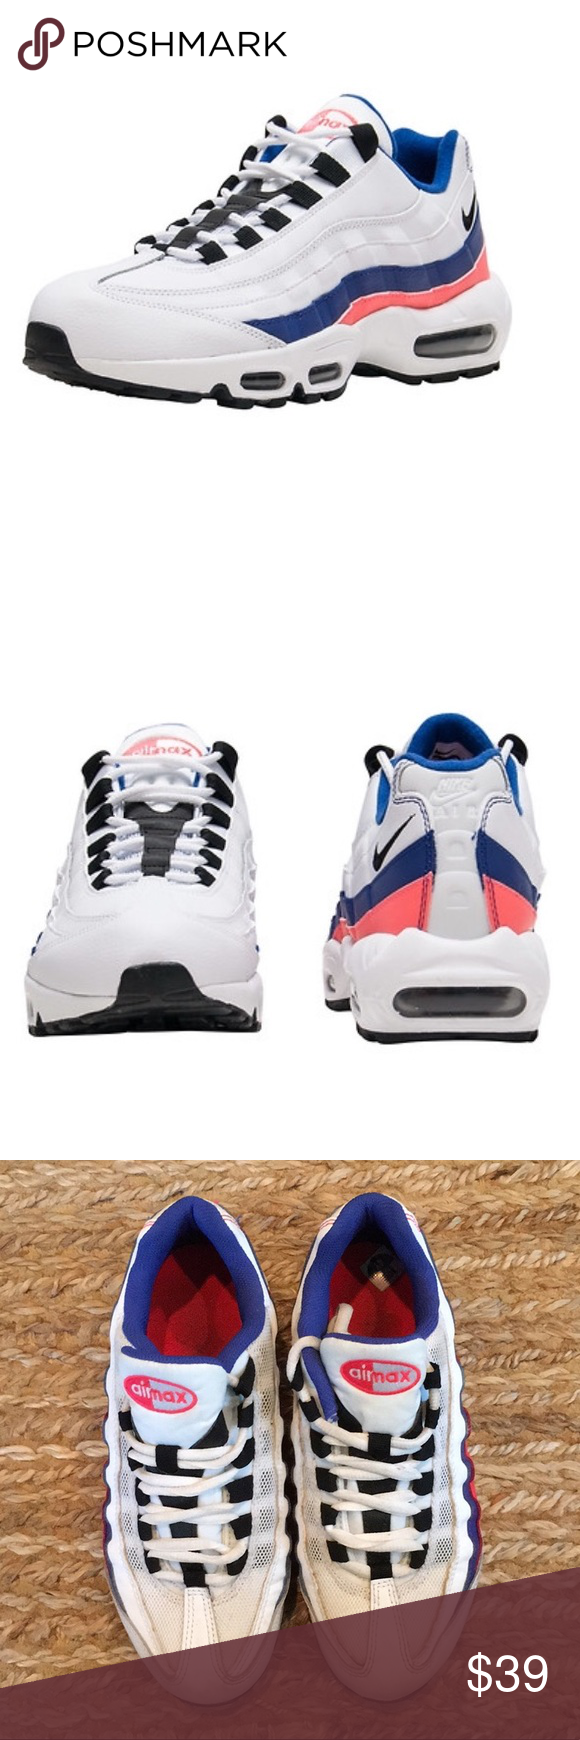 Nike Air Max 85 Essential Sneakers Size 4 Essential sneakers